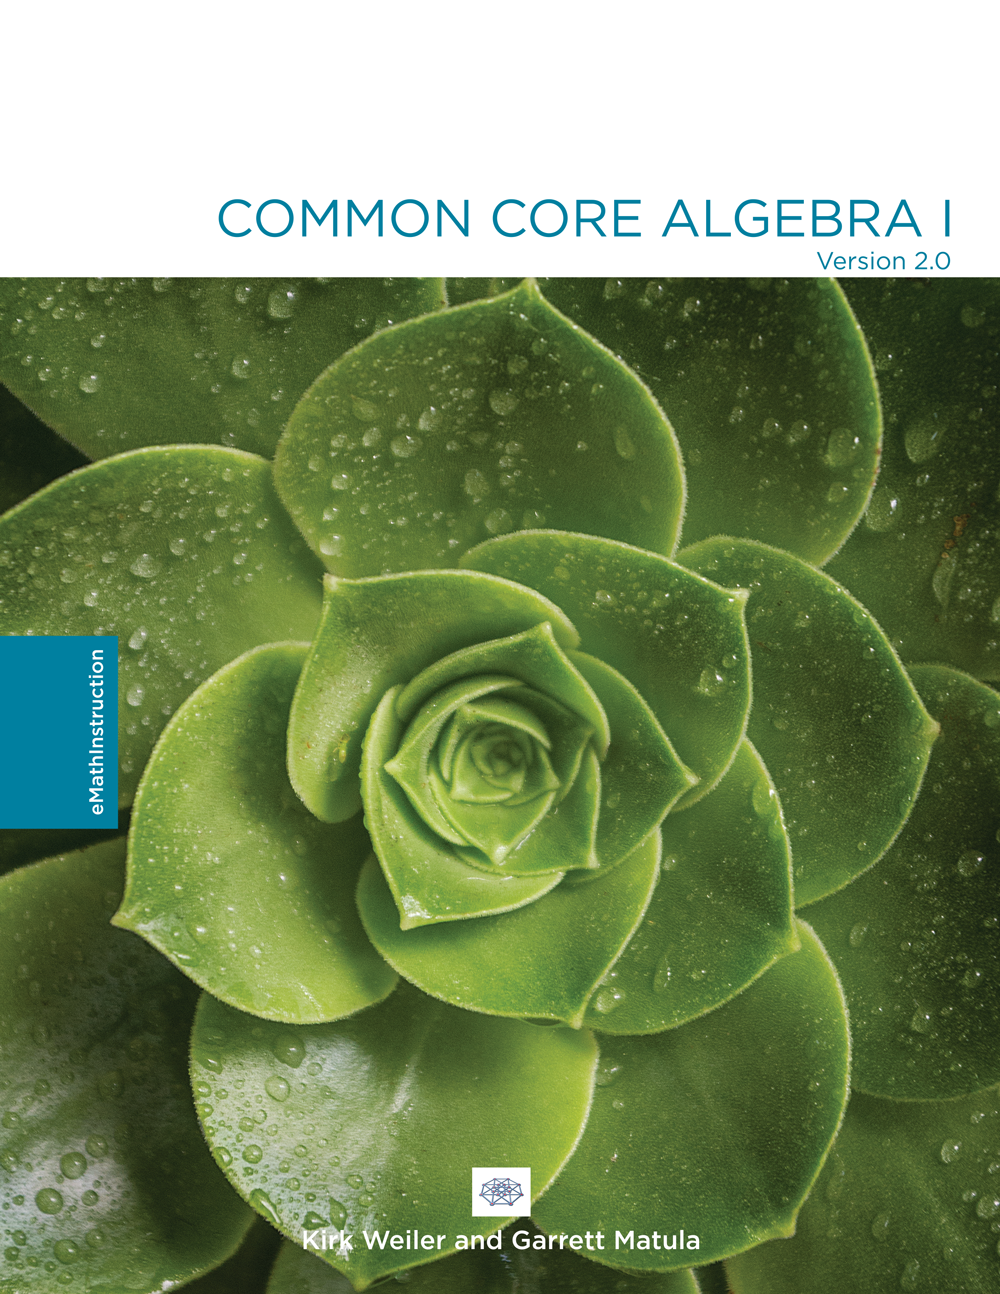 Workbooks prentice hall algebra 1 practice and problem solving workbook answers : Common Core Algebra I Workbook – eMathInstruction